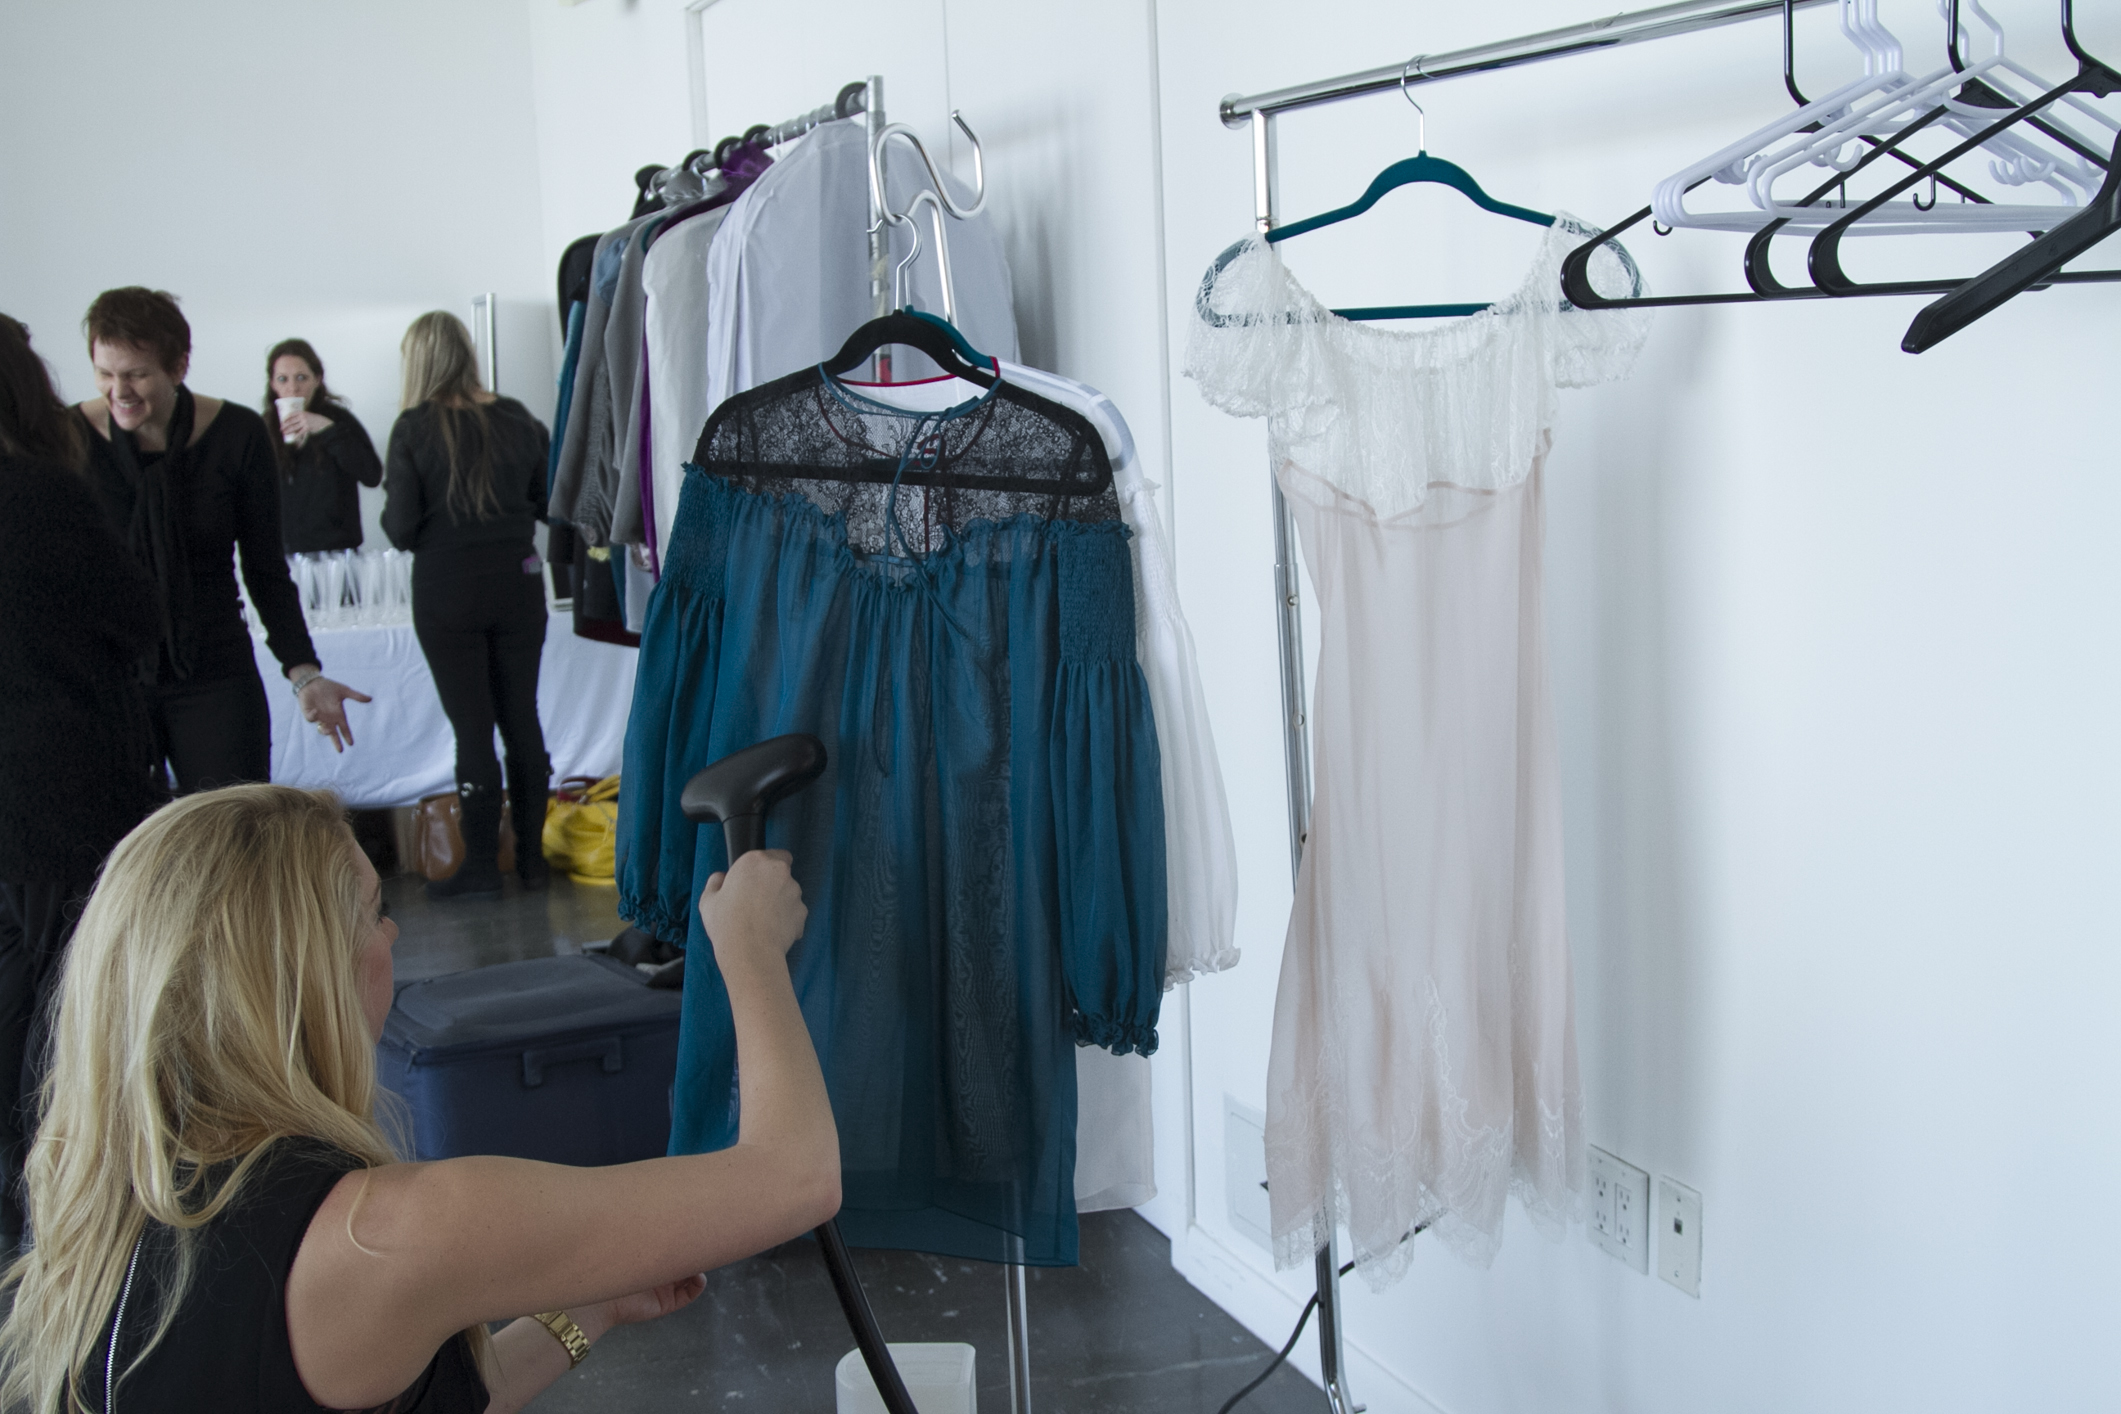 Backstage with Layneau at Lingerie Fashion Week